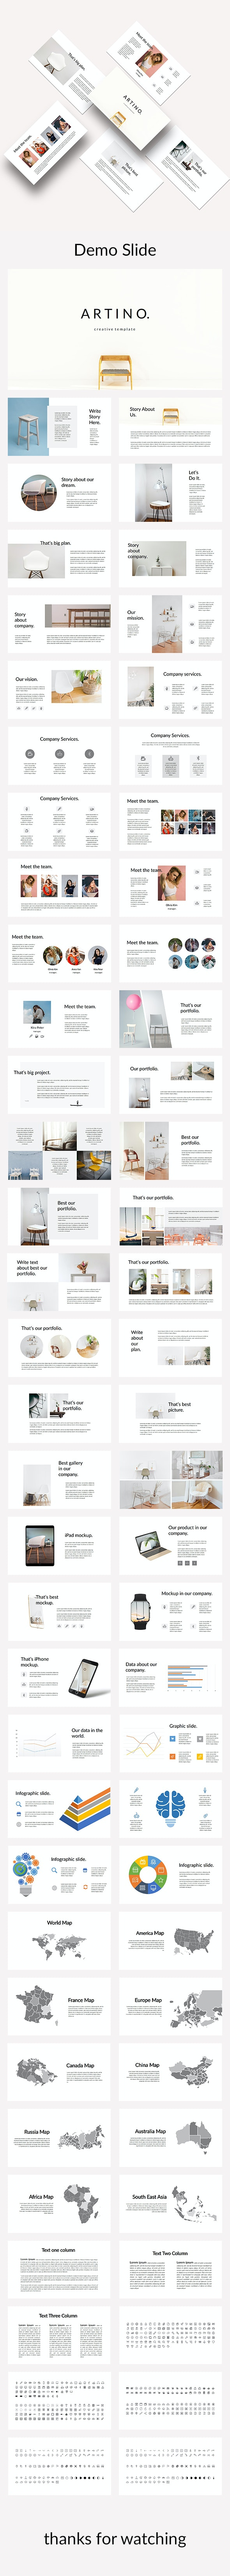 Artino - Creative Keynote Template - Creative Keynote Templates